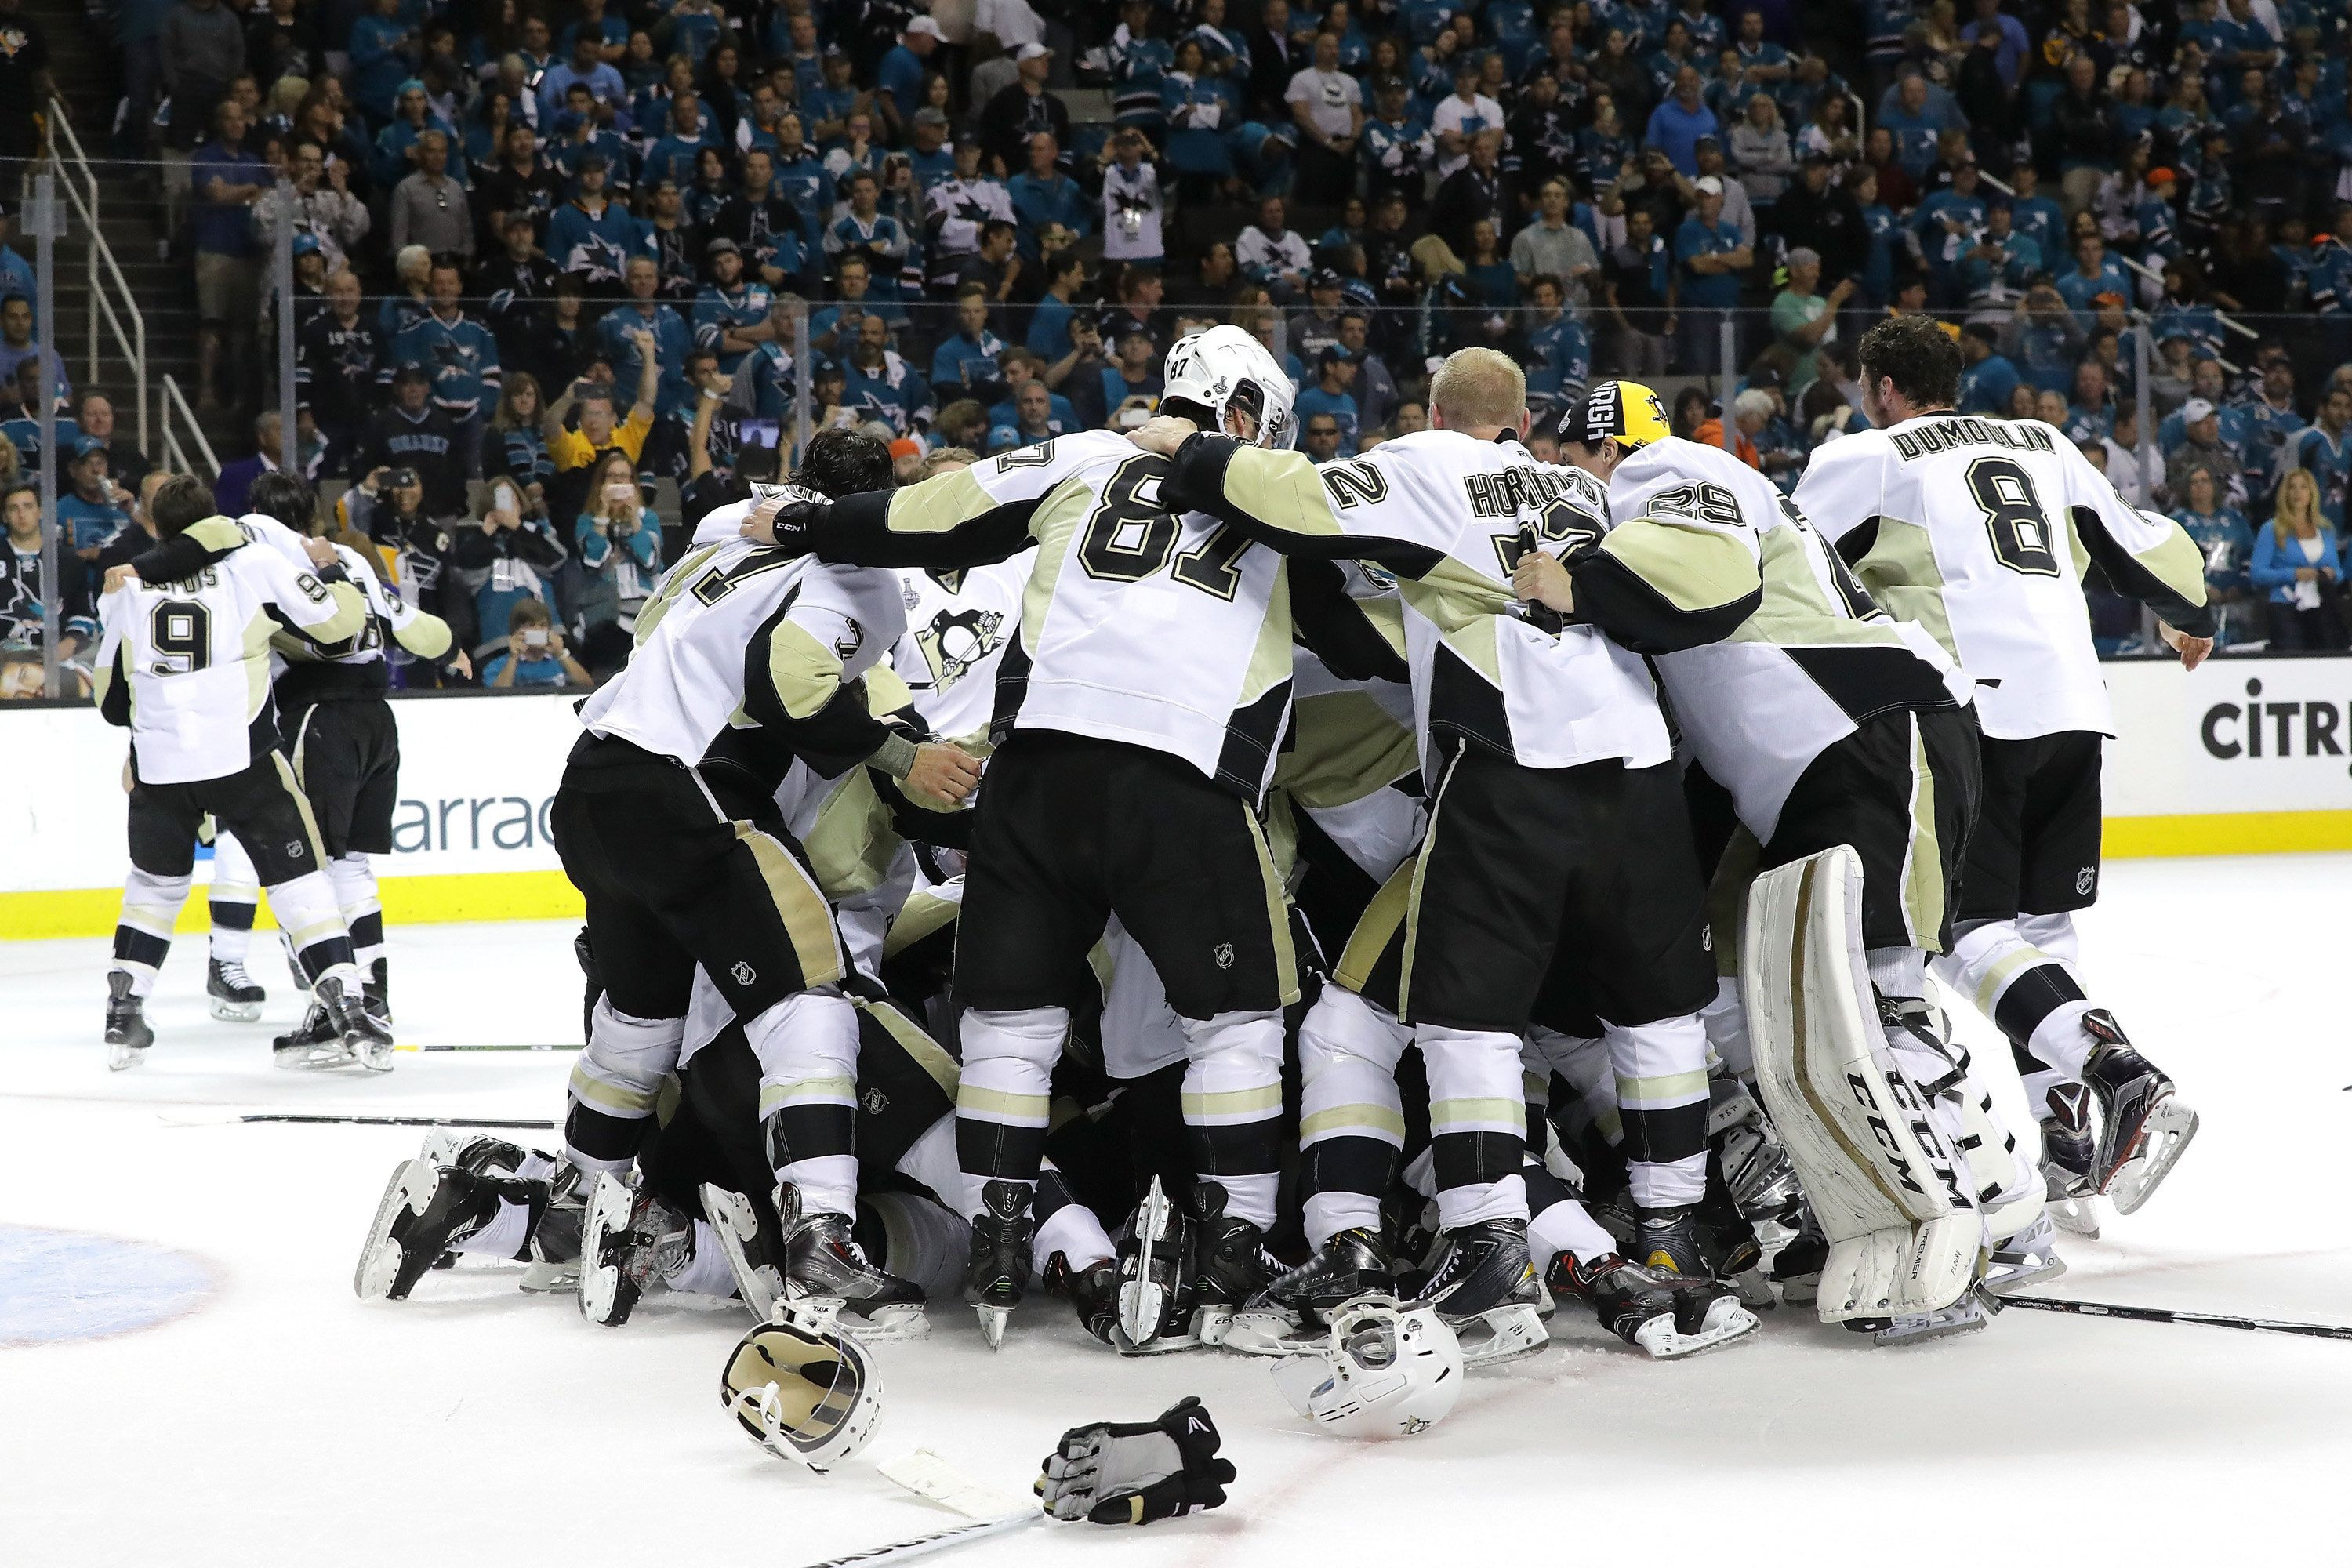 SAN JOSE, CA - JUNE 12:  The Pittsburgh Penguins celebrate after their 3-1 victory to win the Stanley Cup against the San Jose Sharks in Game Six of the 2016 NHL Stanley Cup Final at SAP Center on June 12, 2016 in San Jose, California.  (Photo by Robert Reiners/Getty Images)